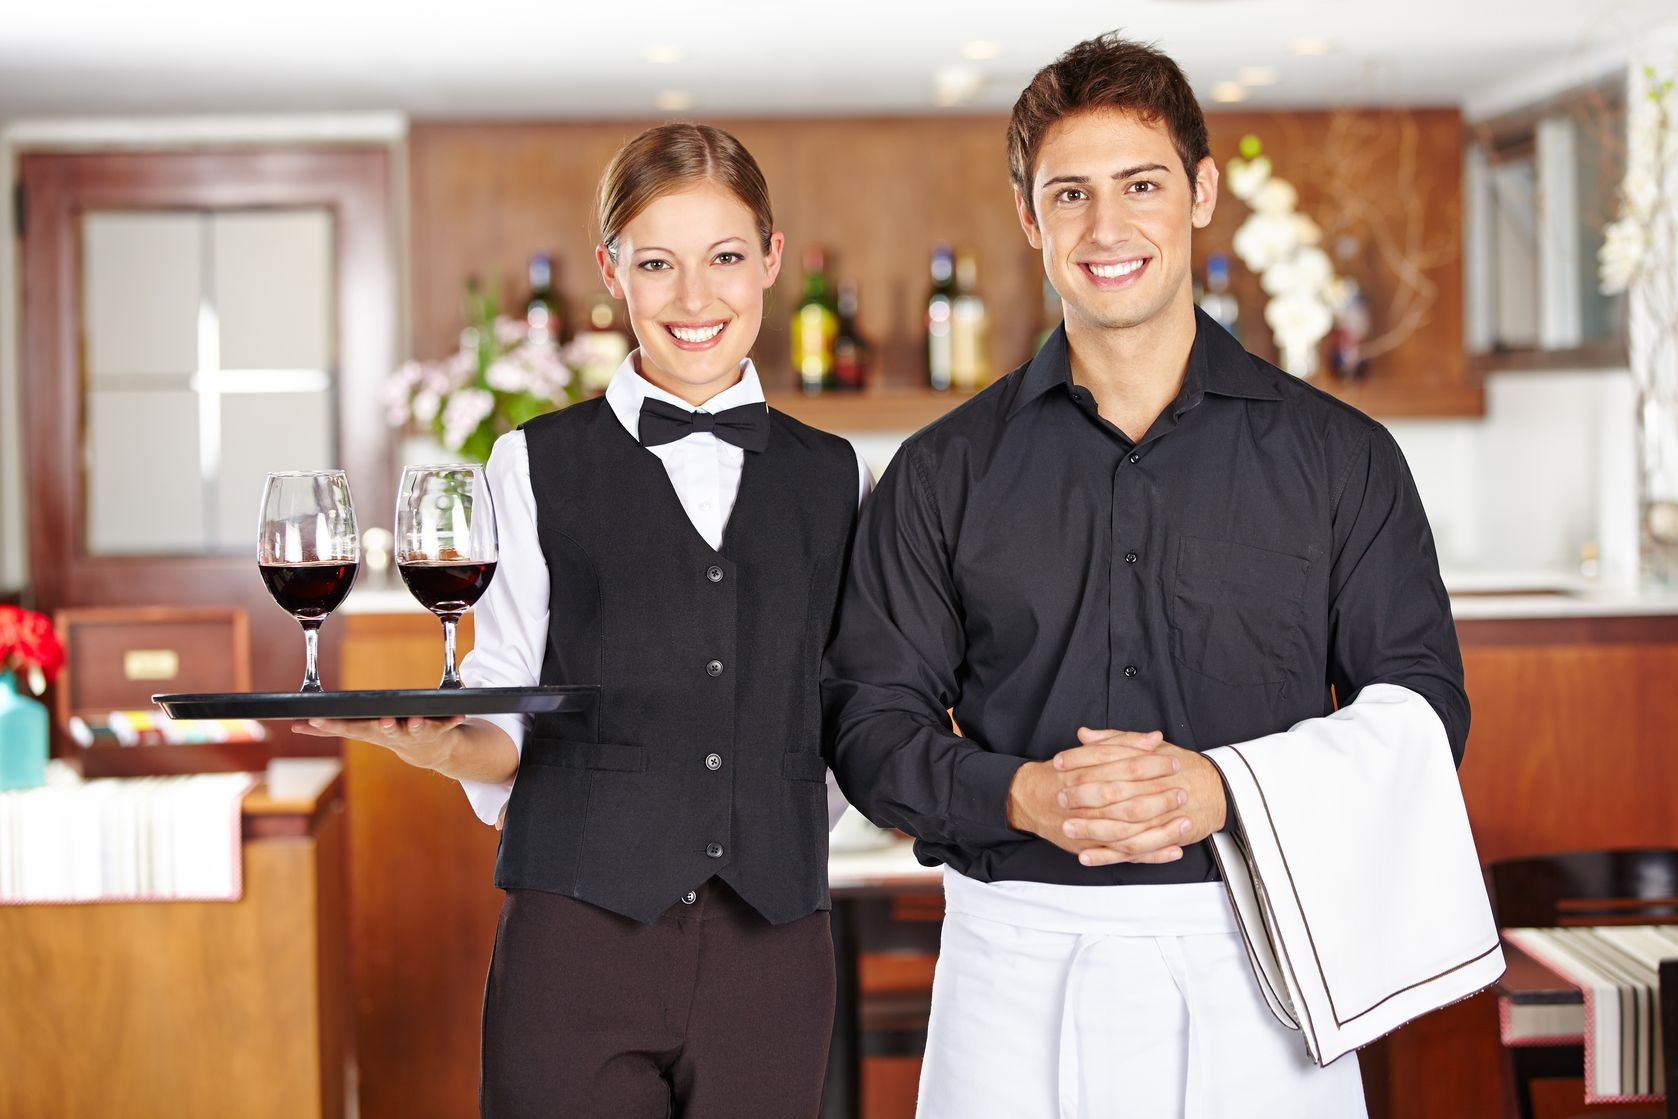 Hospitality and Catering Business for sale in Darwin